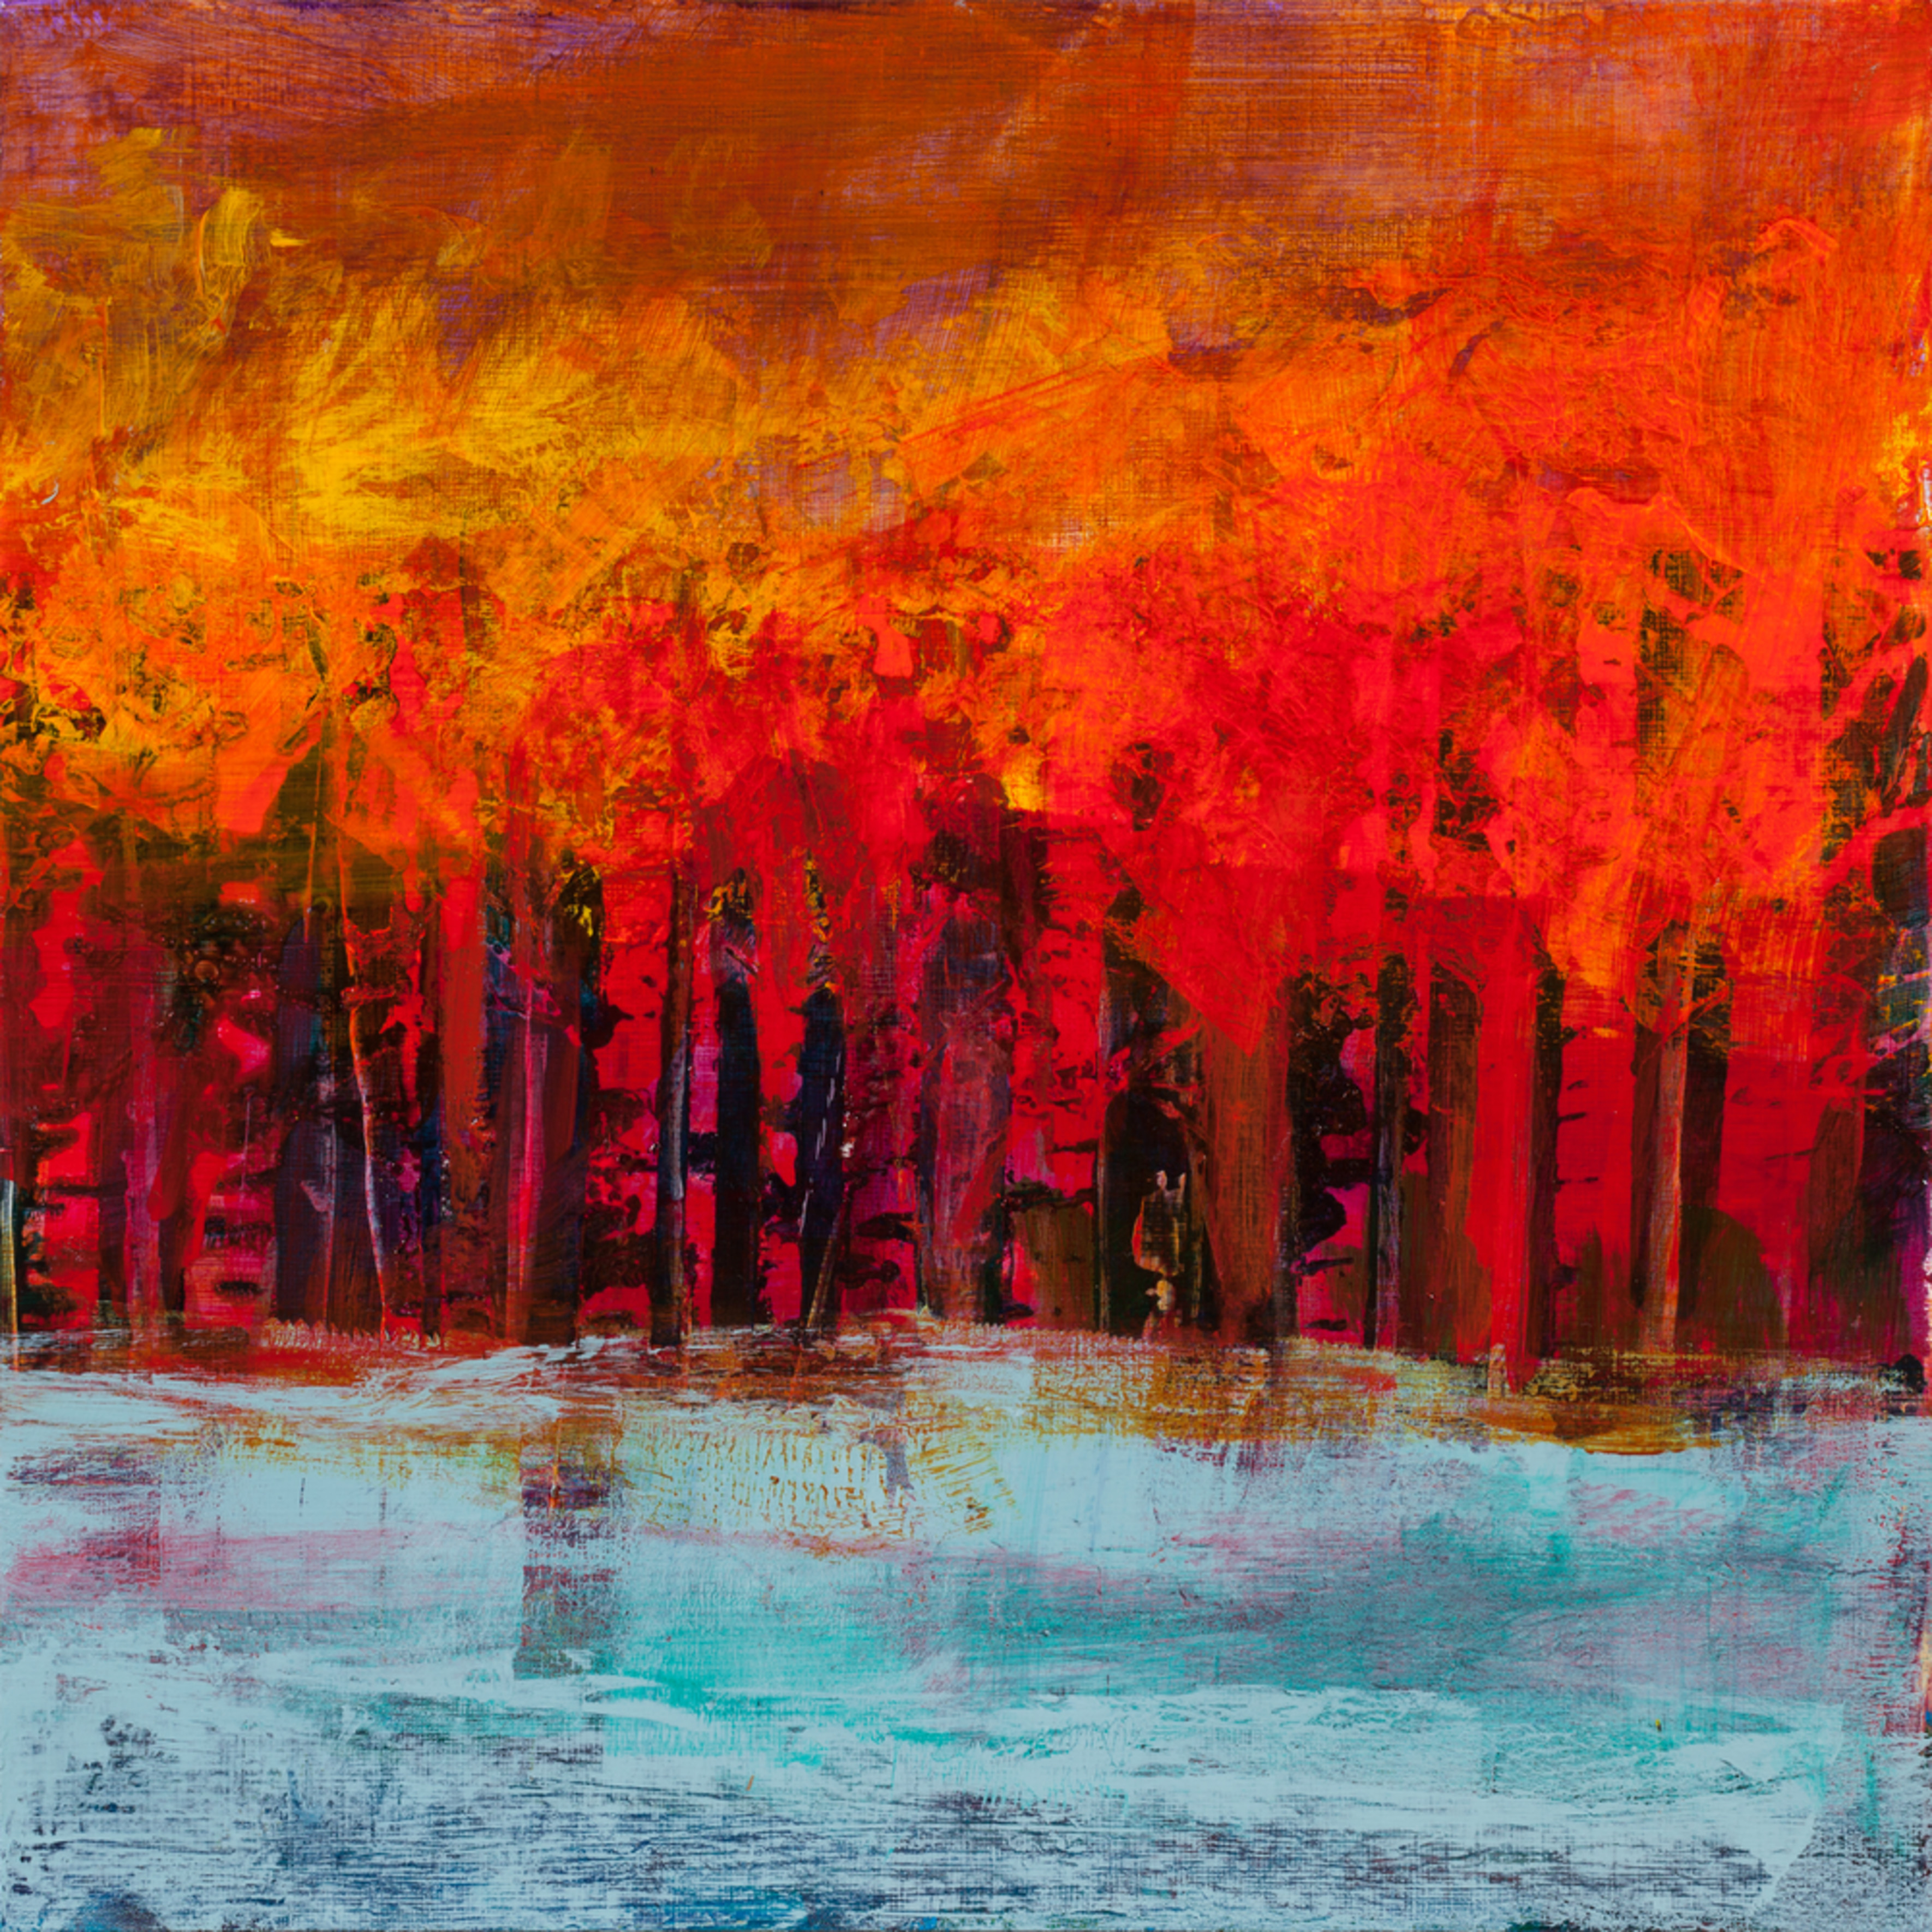 Abstract landscapes magical shift i tracy lynn pristas commissioned artist apquz1